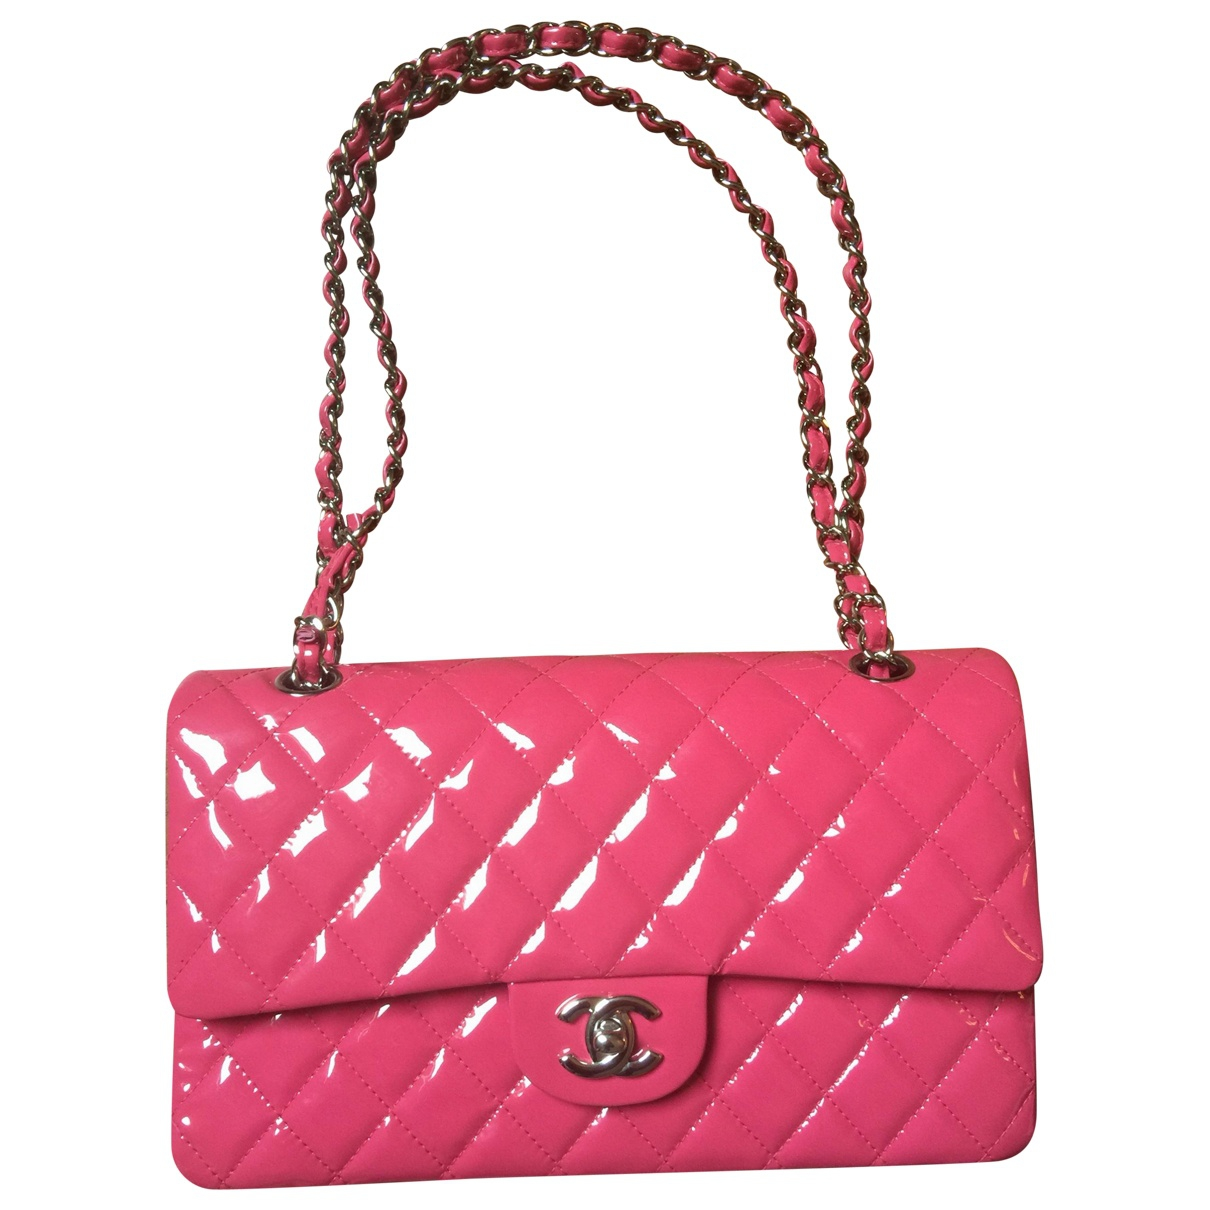 wish list dream bag chanel 2.55 boy bag classic chanel patent leather pink